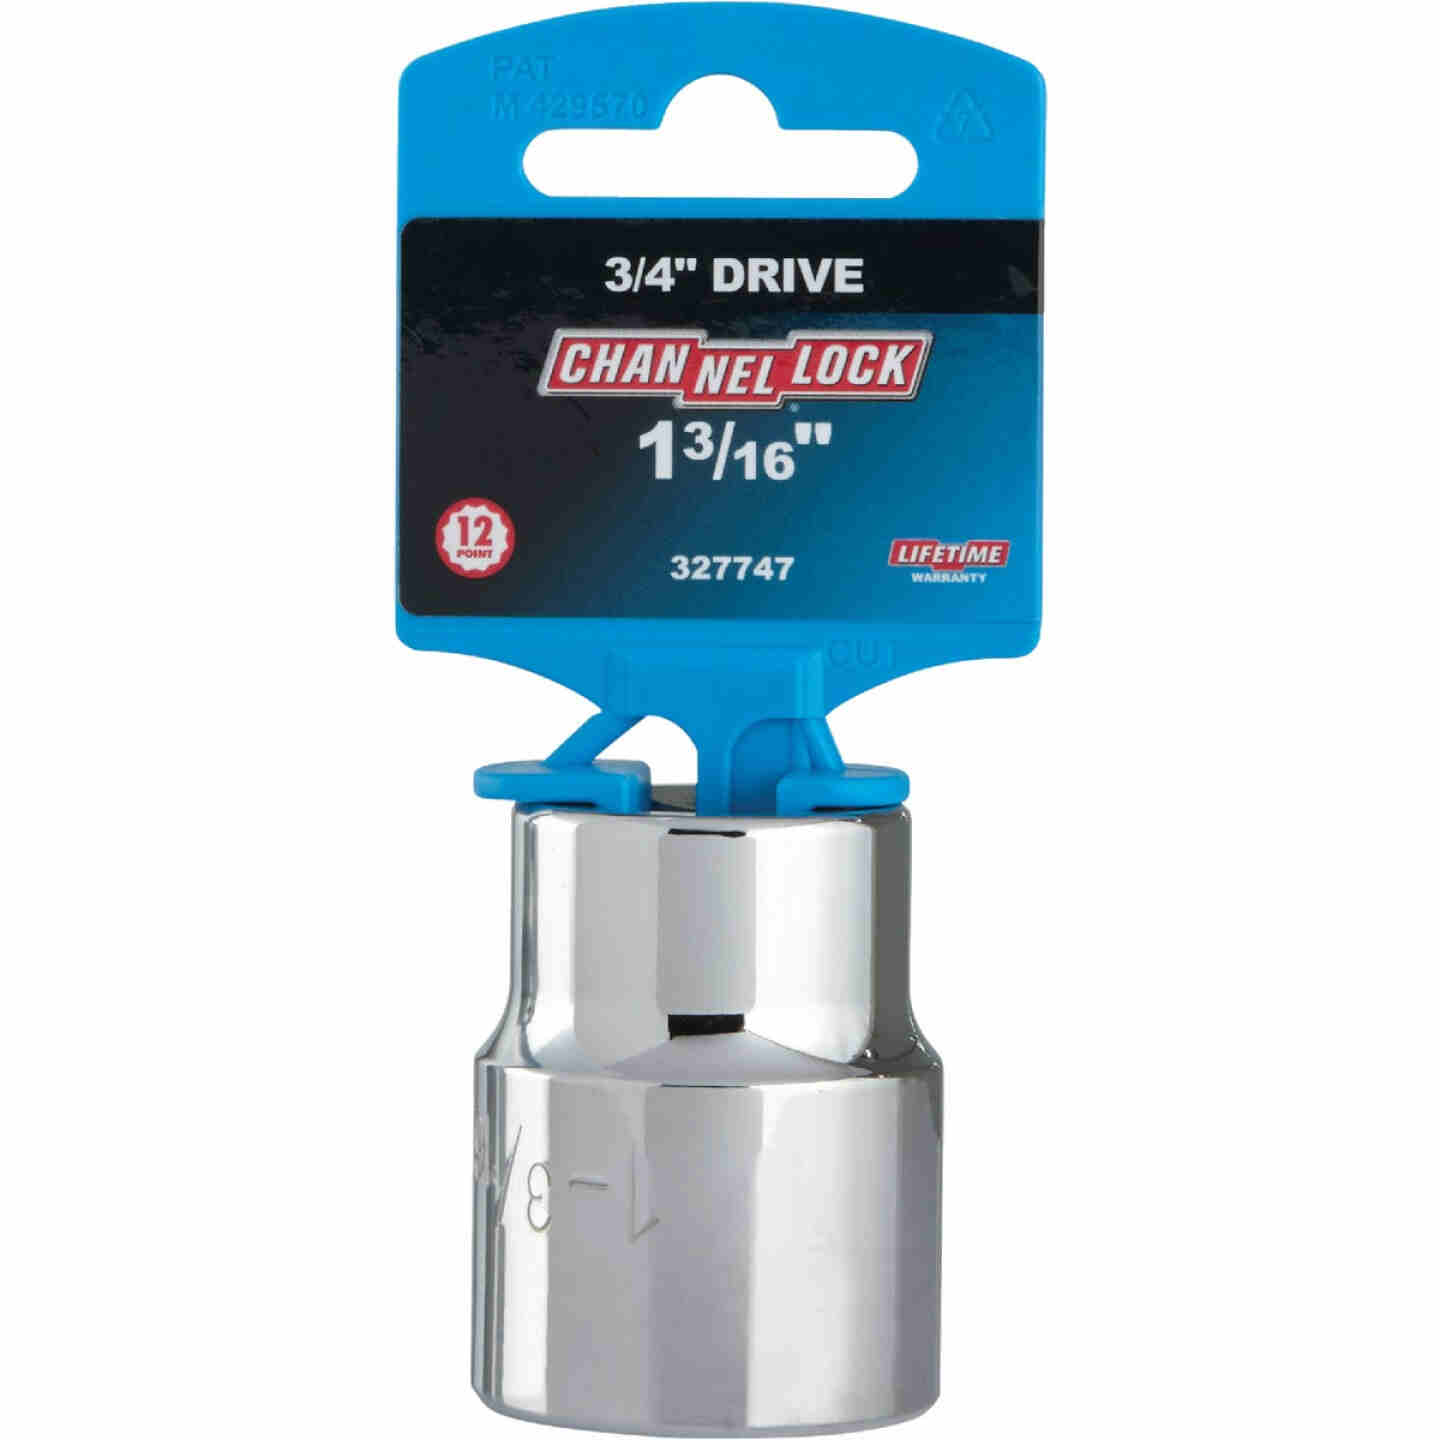 Channellock 3/4 In. Drive 1-3/16 In. 12-Point Shallow Standard Socket Image 2